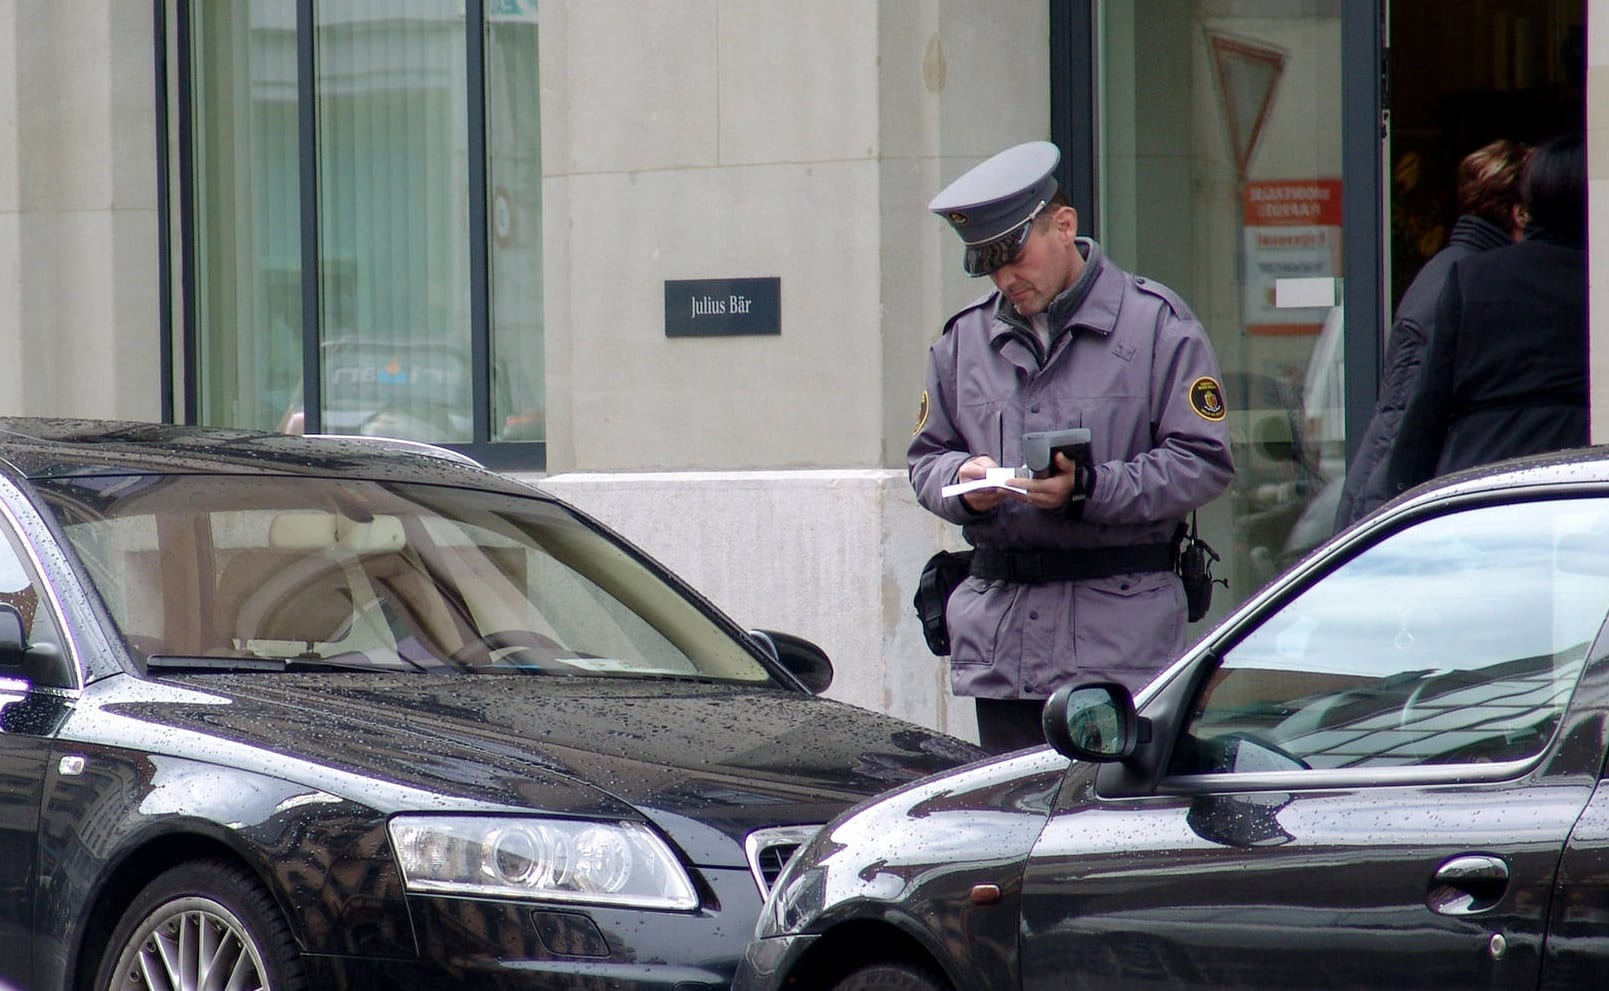 A policeman in uniform stands between two cars, writing a parking ticket.